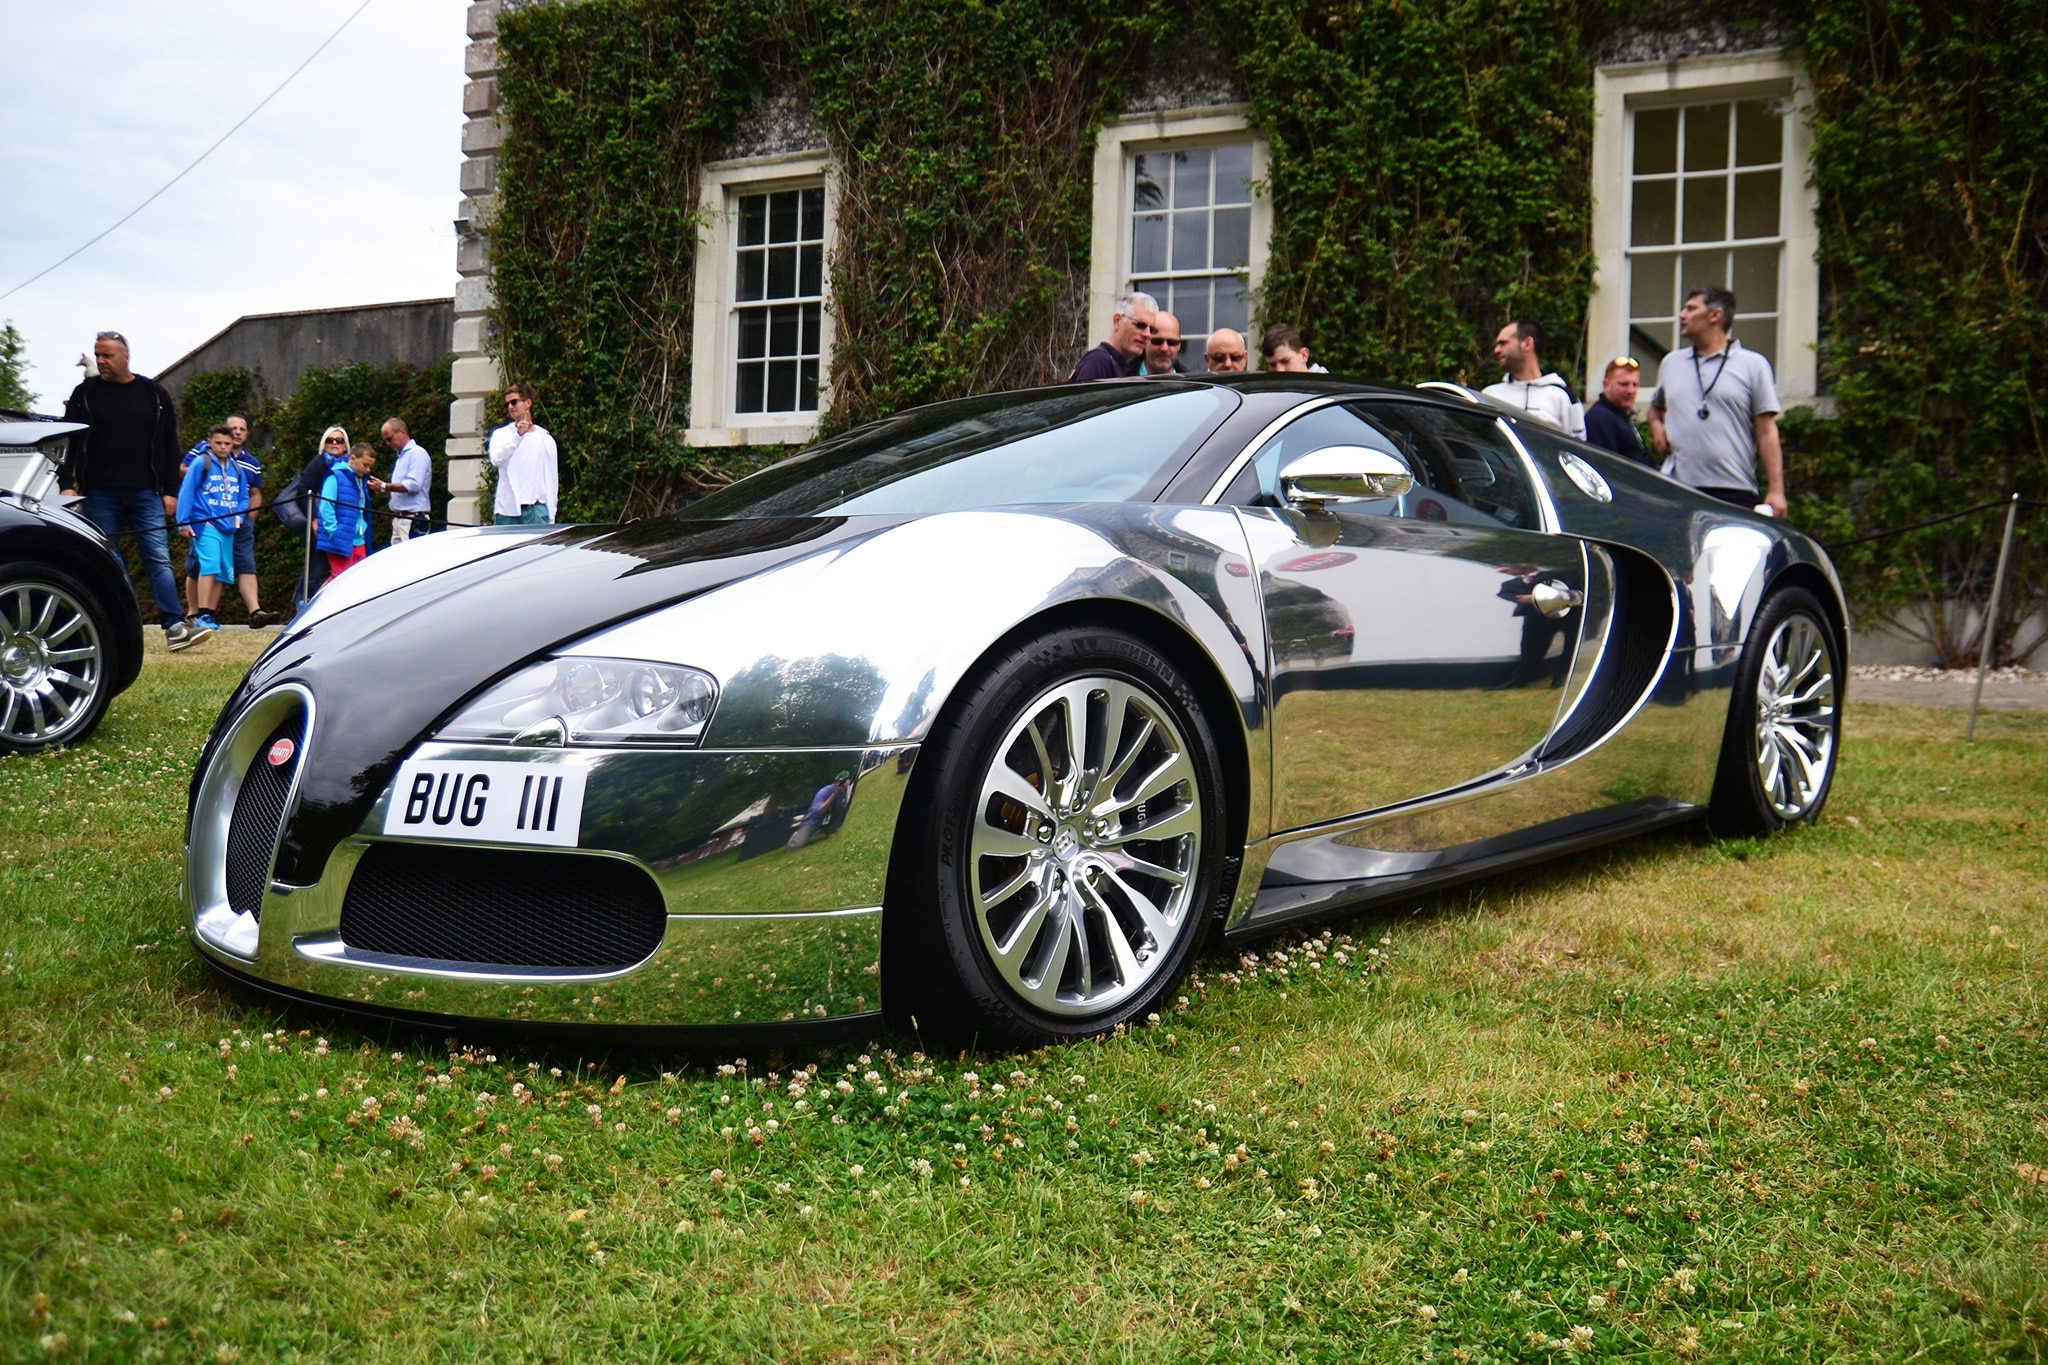 Bugatti Displayed 9 404 Horsepower At The 2017 Goodwood